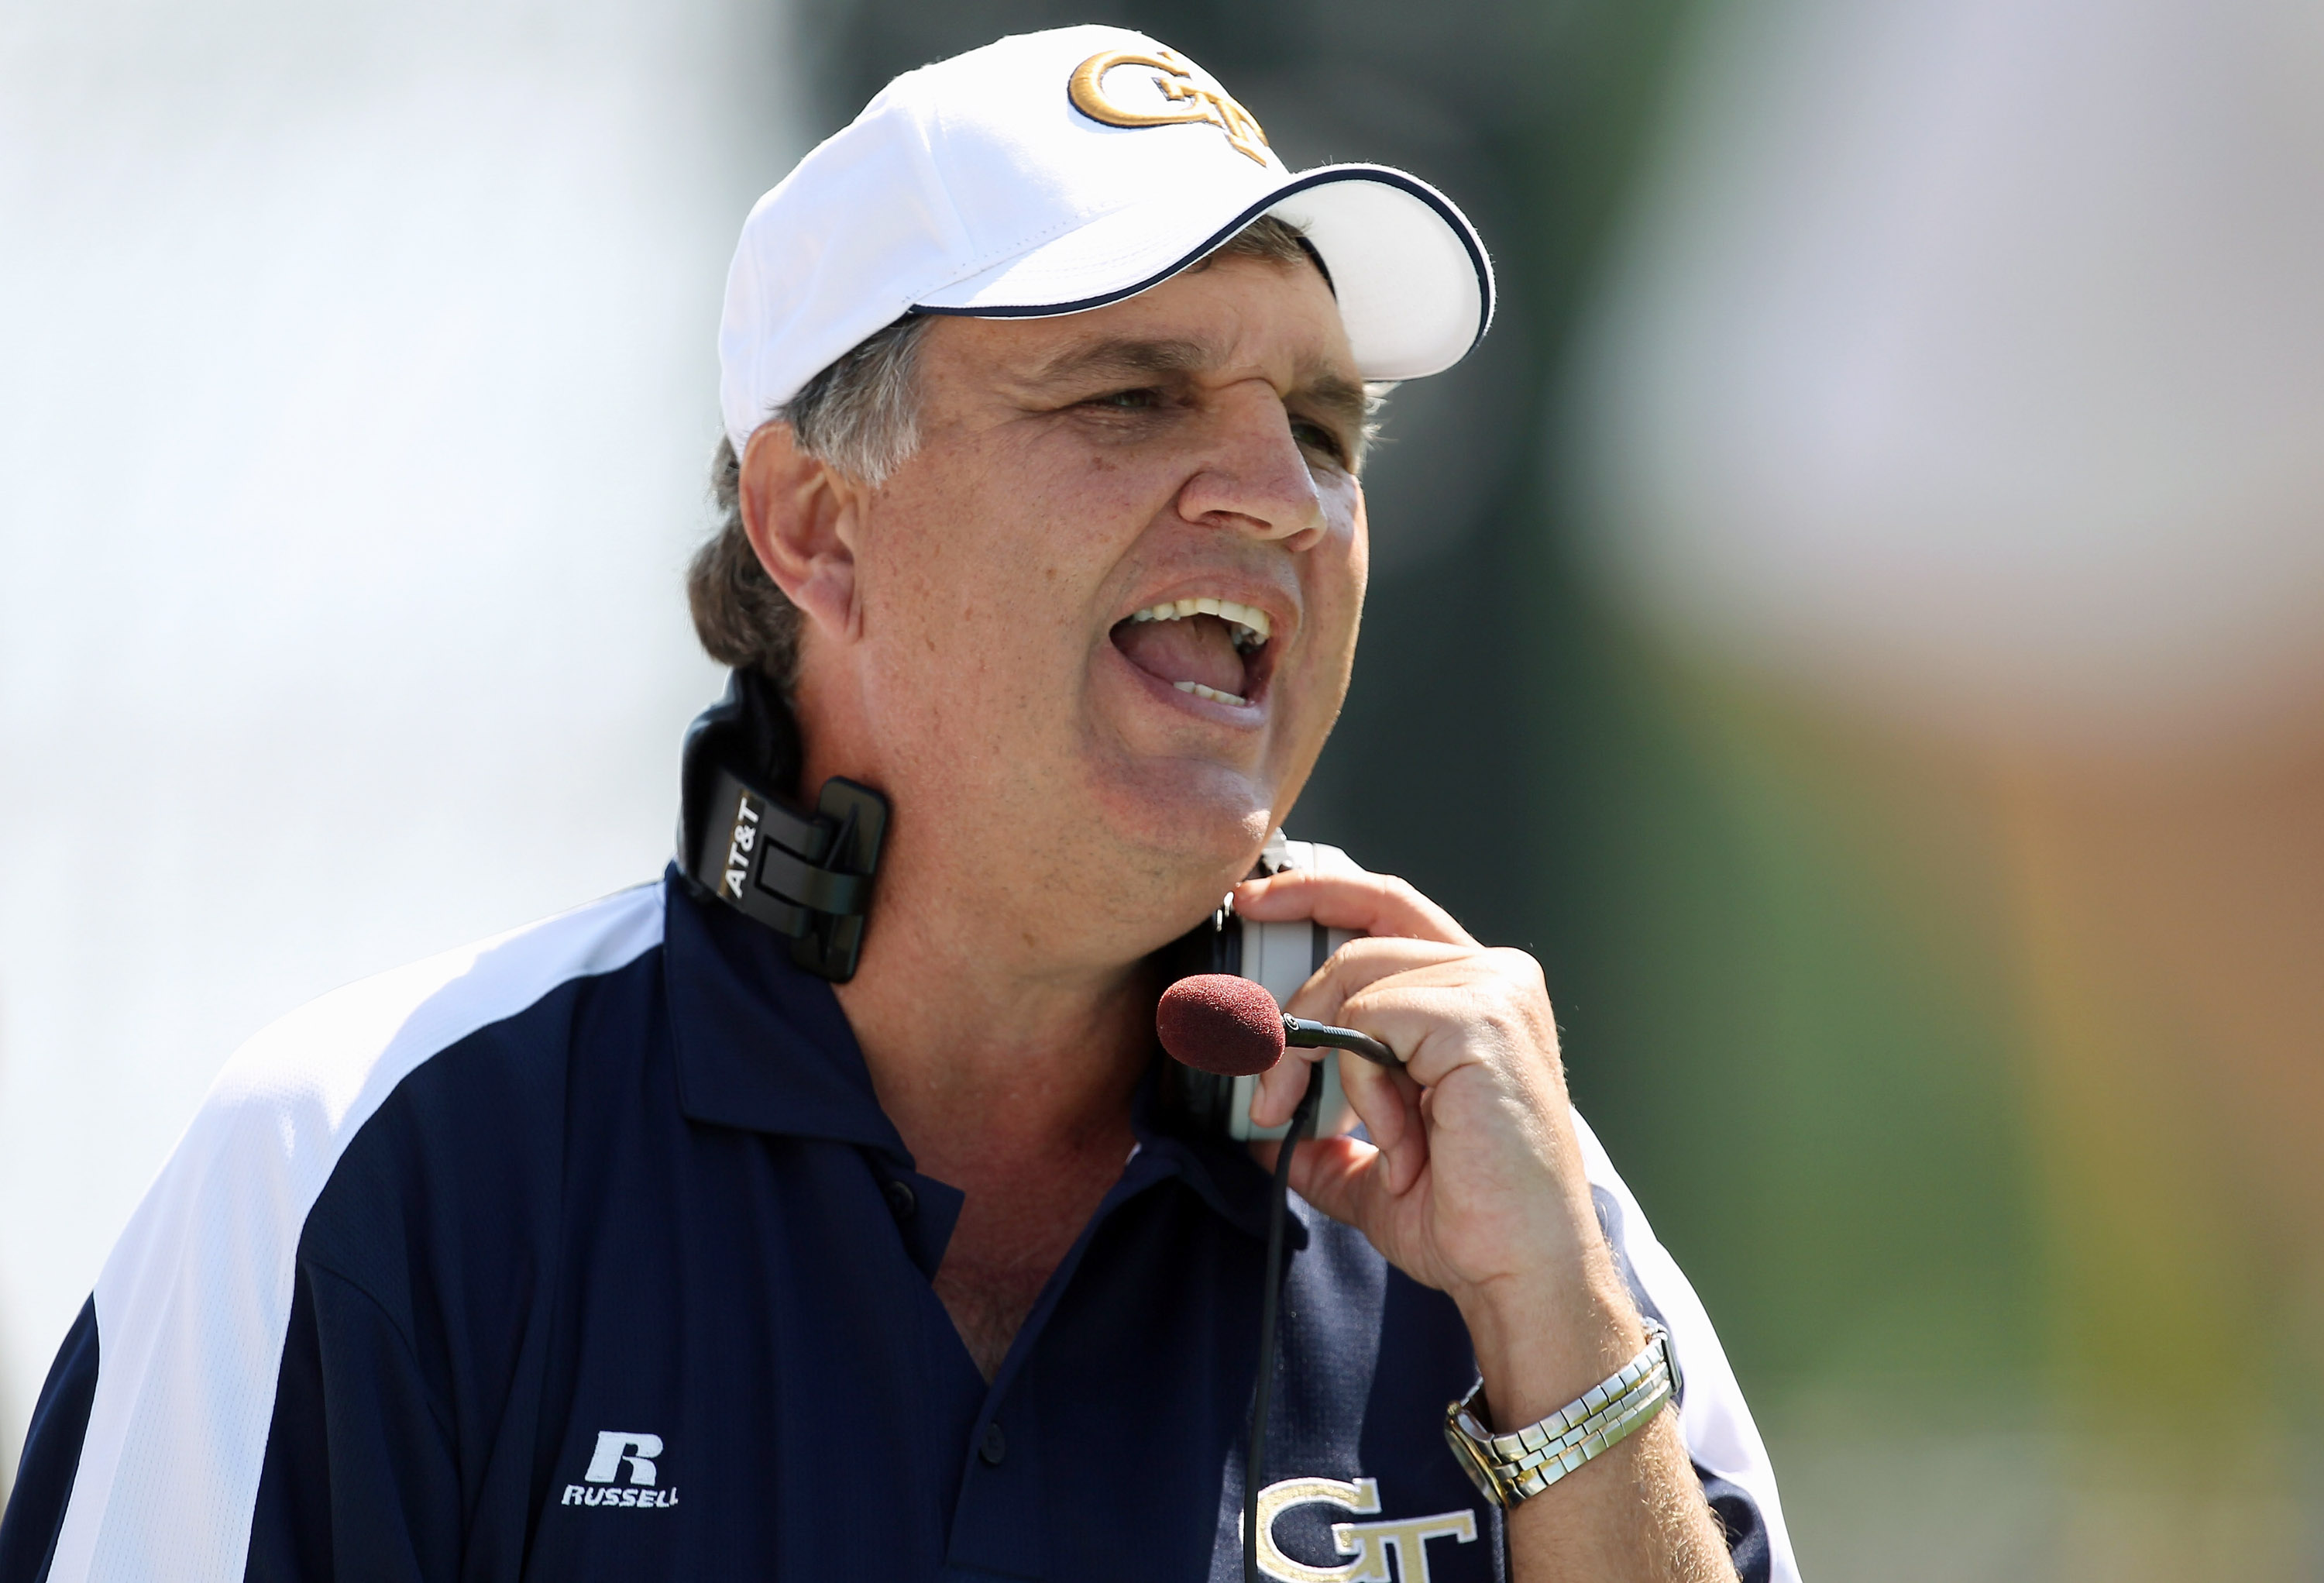 CHAPEL HILL, NC - SEPTEMBER 18:  Head coach Paul Johnson of the Georgia Tech Yellow Jackets watches on against the North Carolina Tar Heels during their game at Kenan Stadium on September 18, 2010 in Chapel Hill, North Carolina.  (Photo by Streeter Lecka/